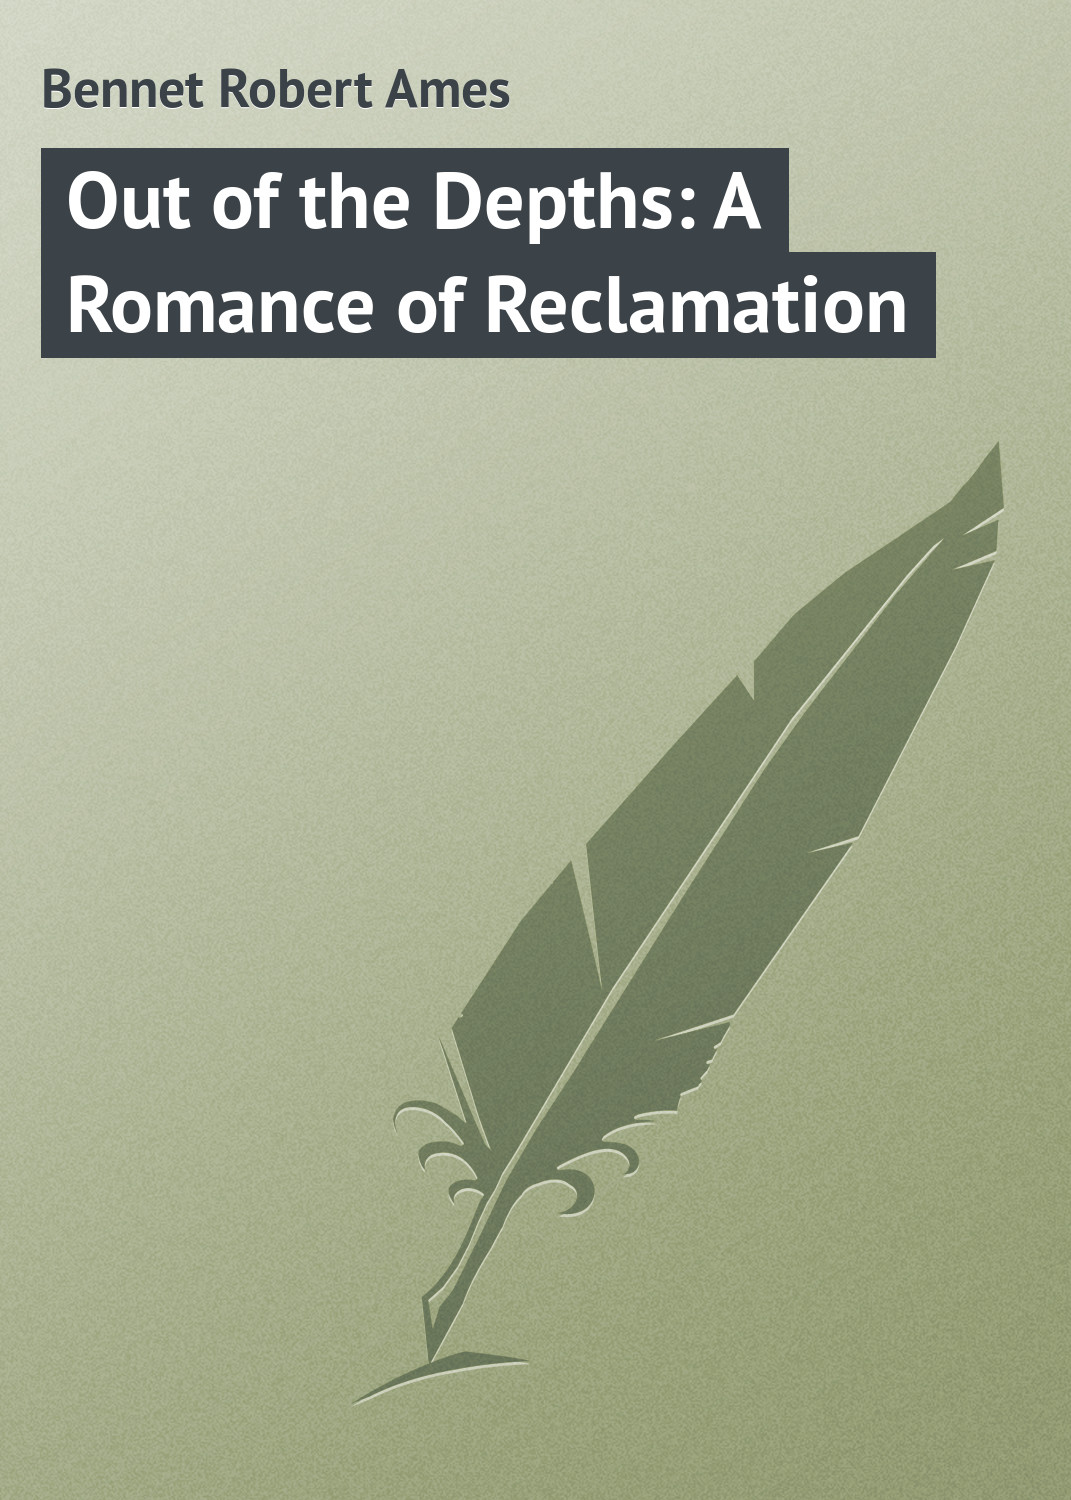 цена Bennet Robert Ames Out of the Depths: A Romance of Reclamation